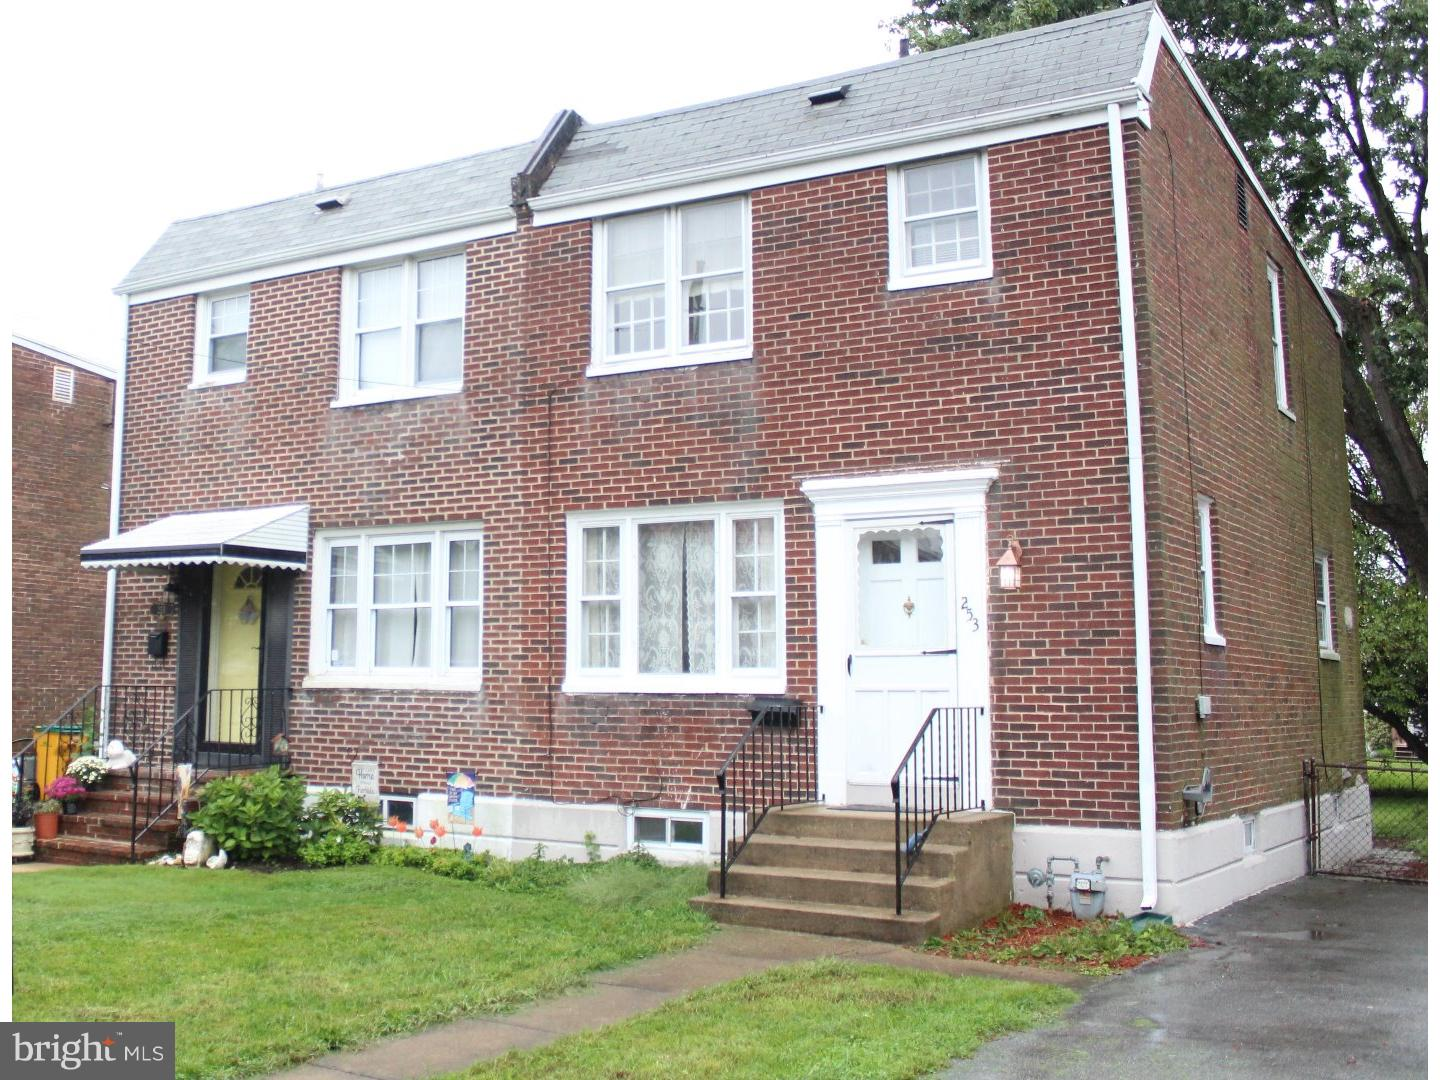 Single Family Home for Sale at 253 LOCUST Avenue Elsmere, Delaware 19805 United States